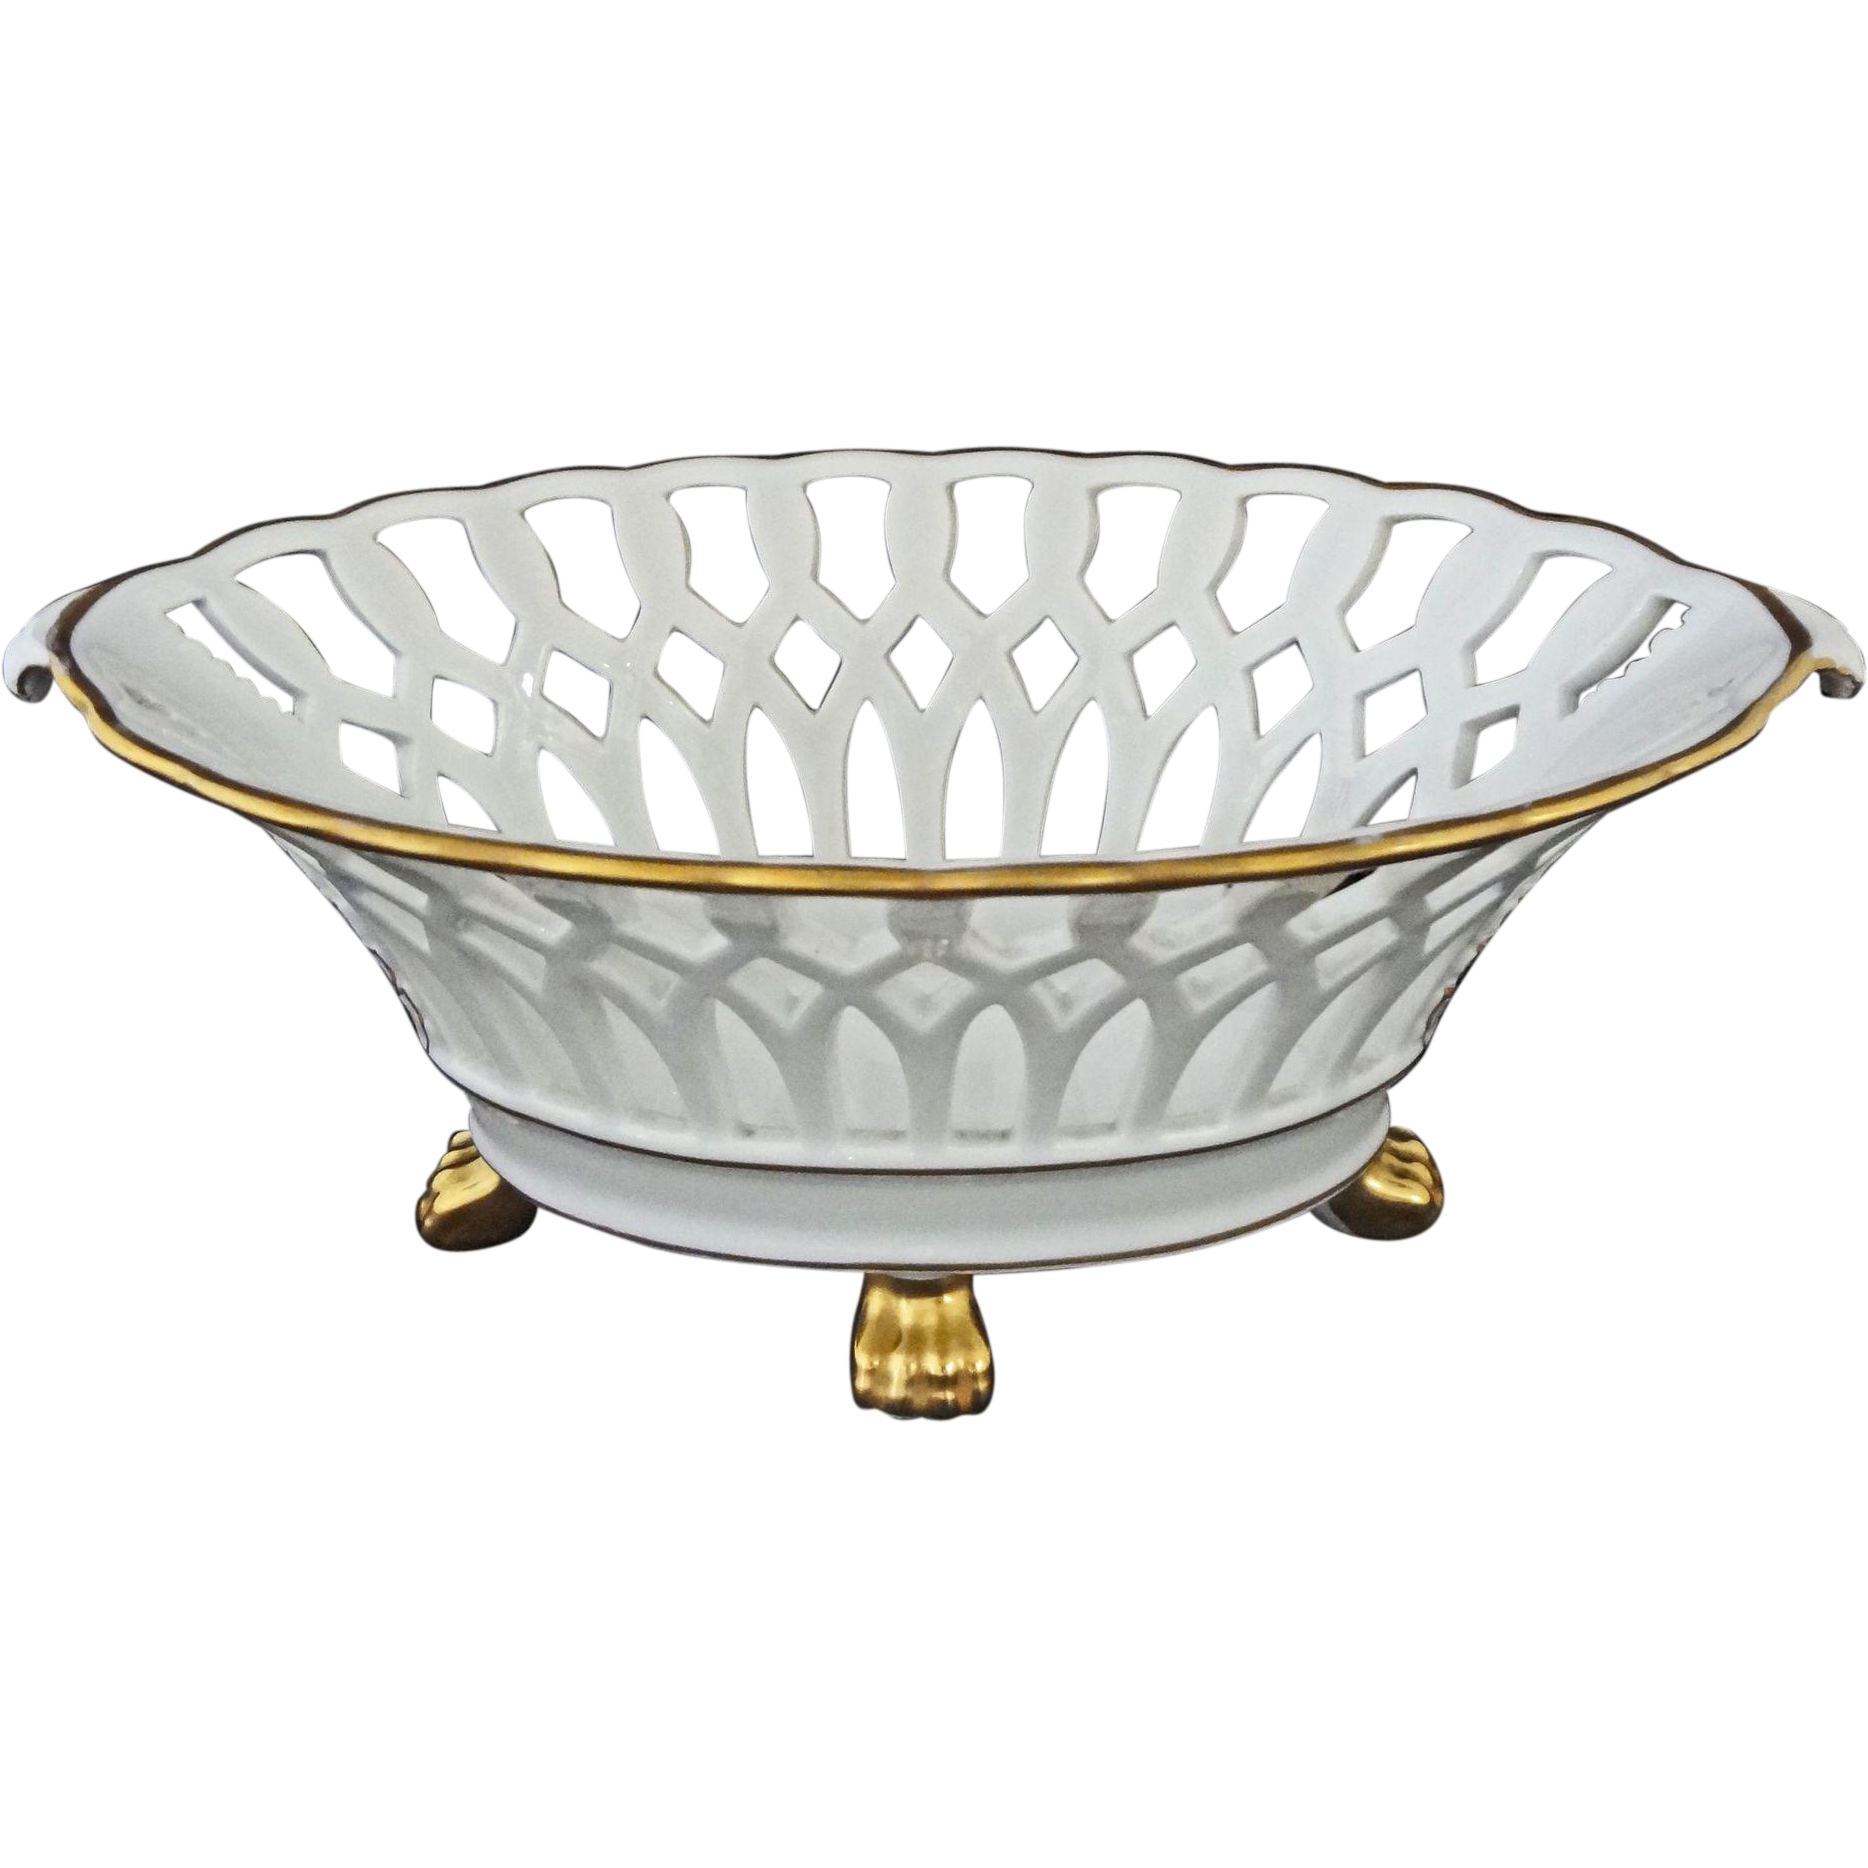 Reticulated white porcelain centerpiece console bowl